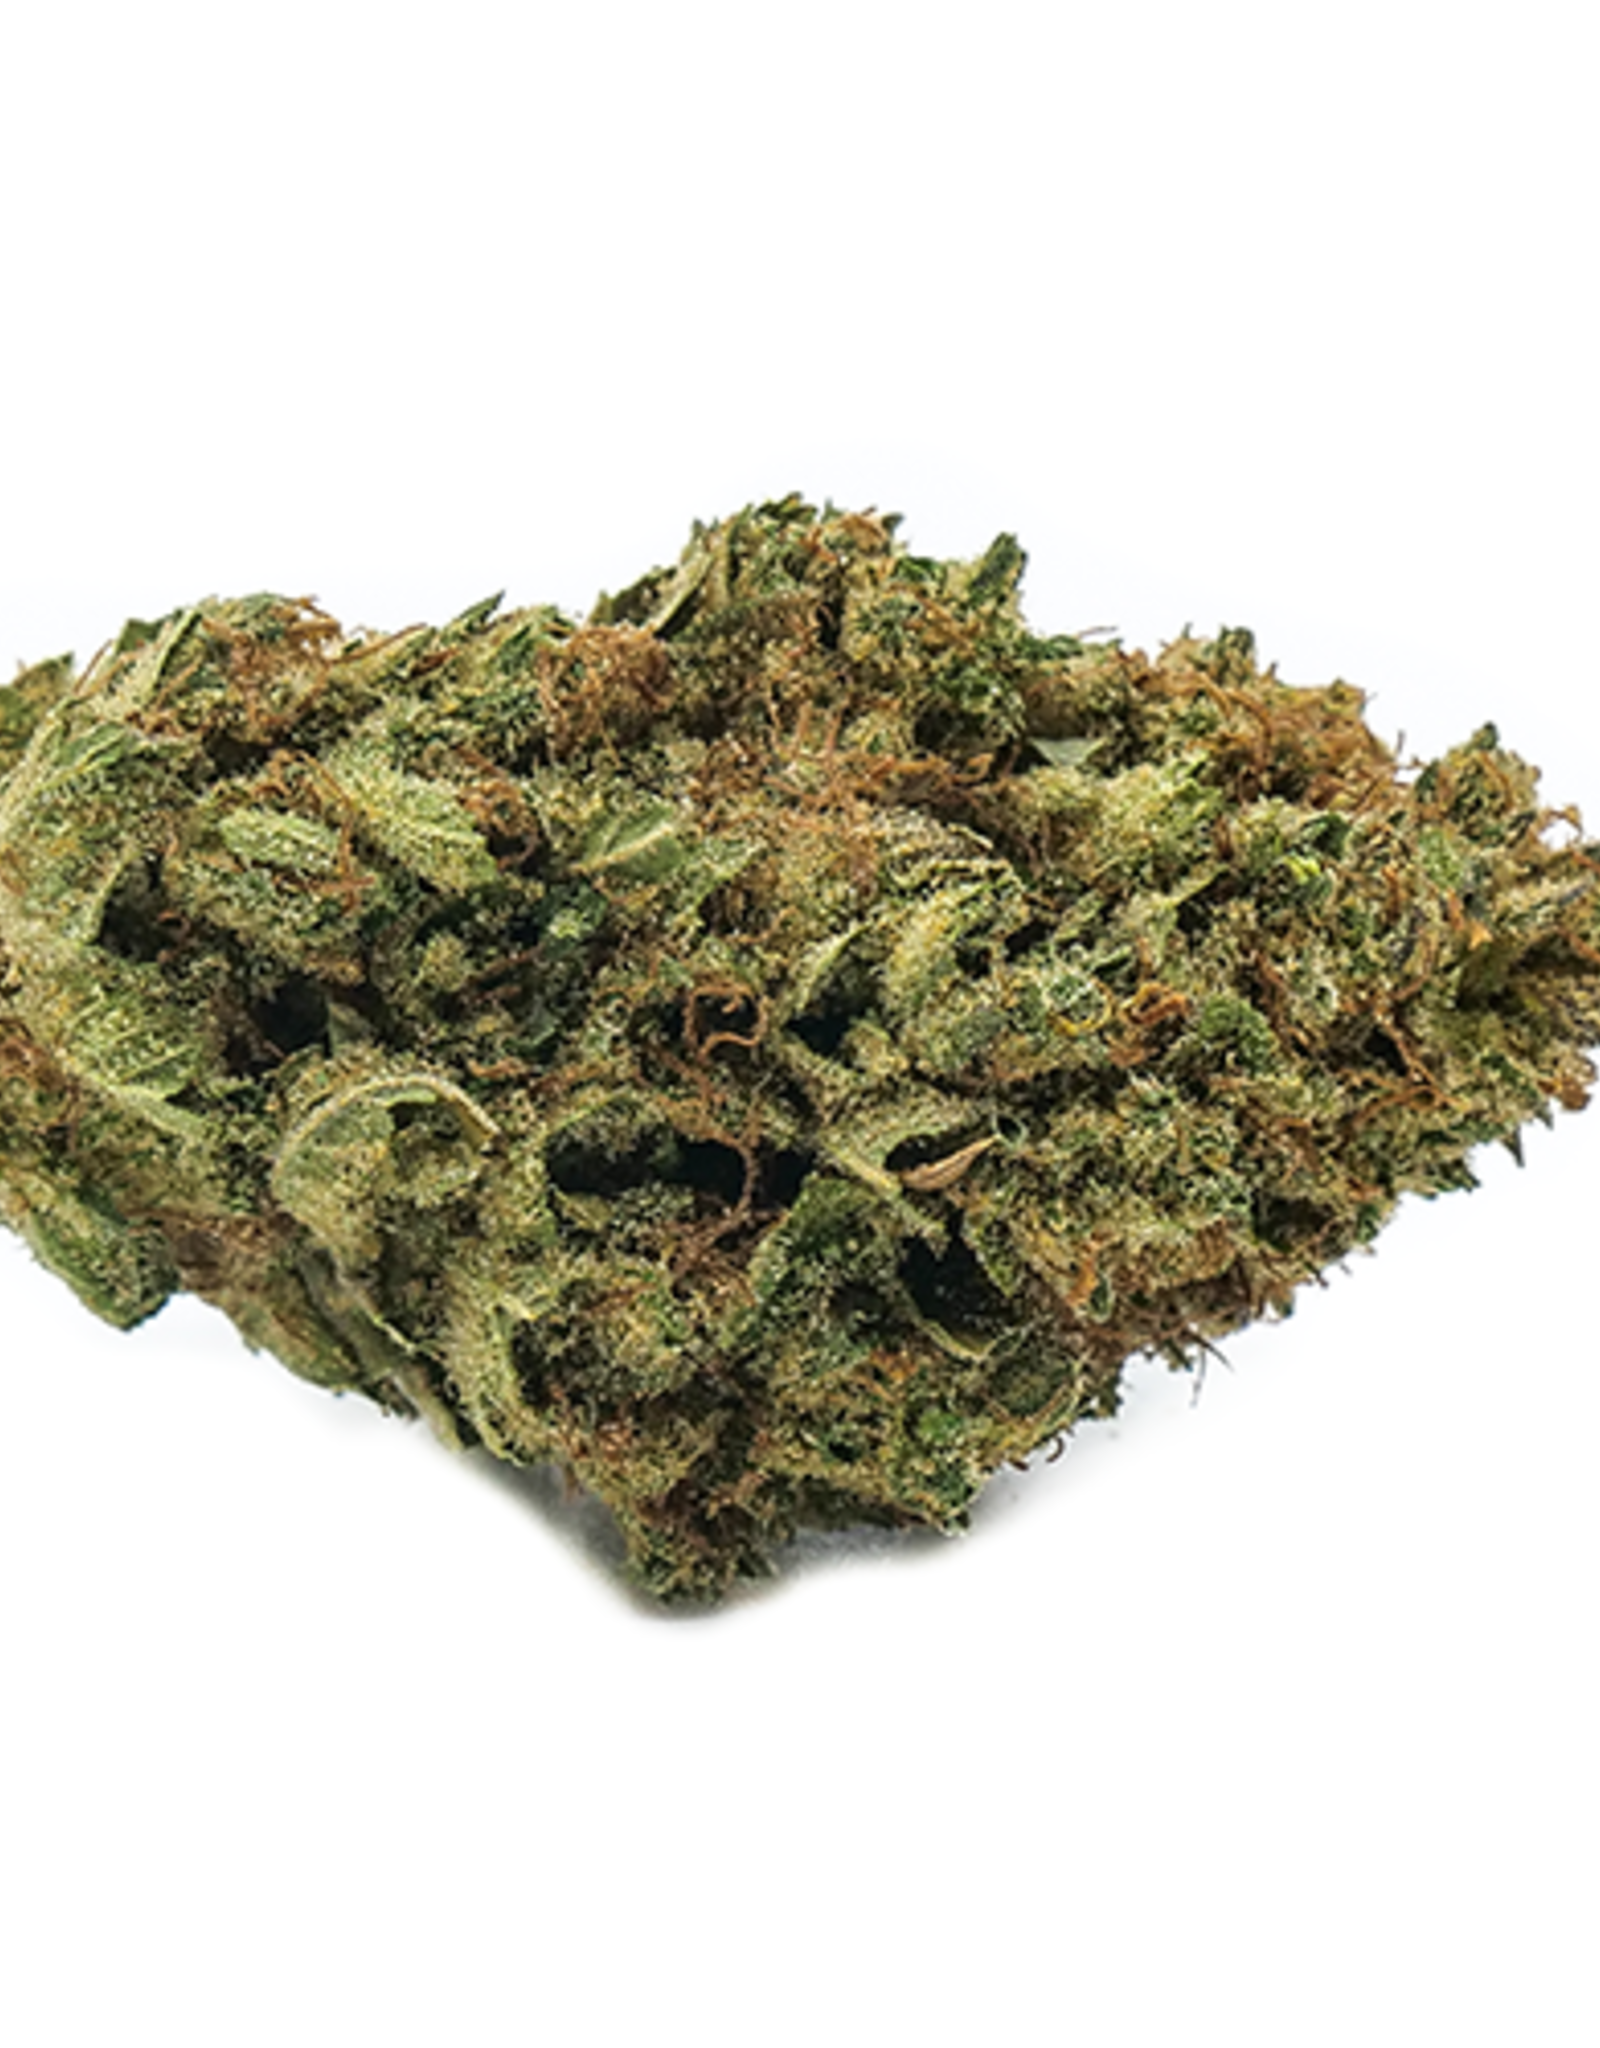 Redecan Redecan - Cold Creek Kush - 1G